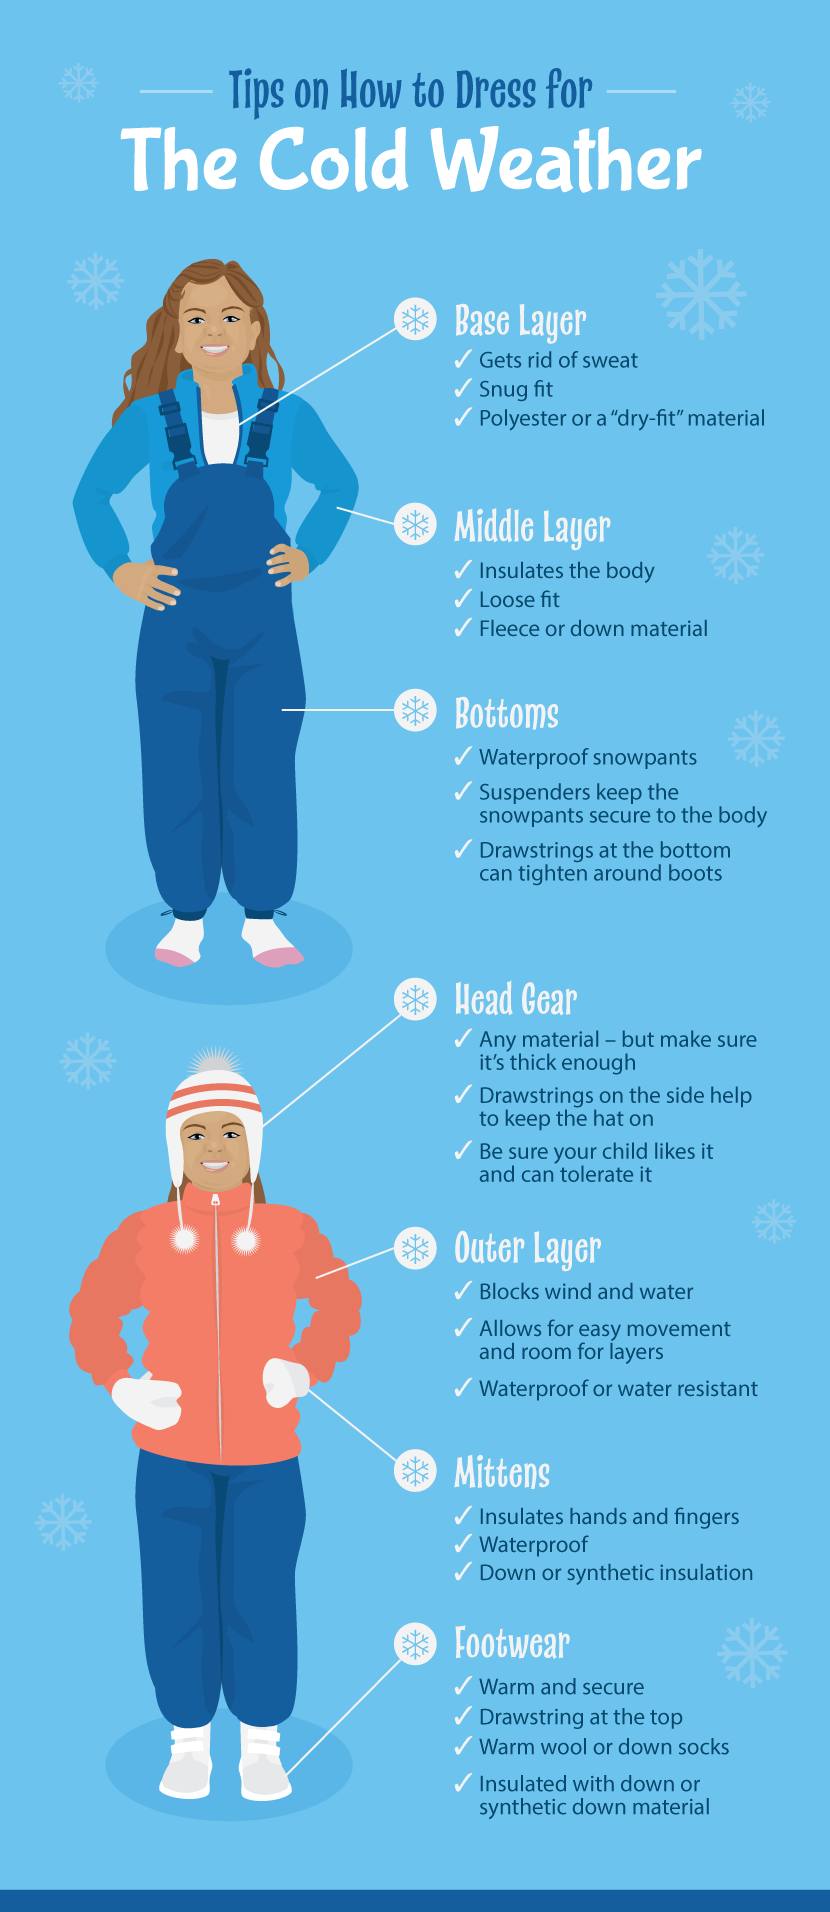 How to Dress Kids For Cold Weather - Why Kids Should Play Outdoors in Winter